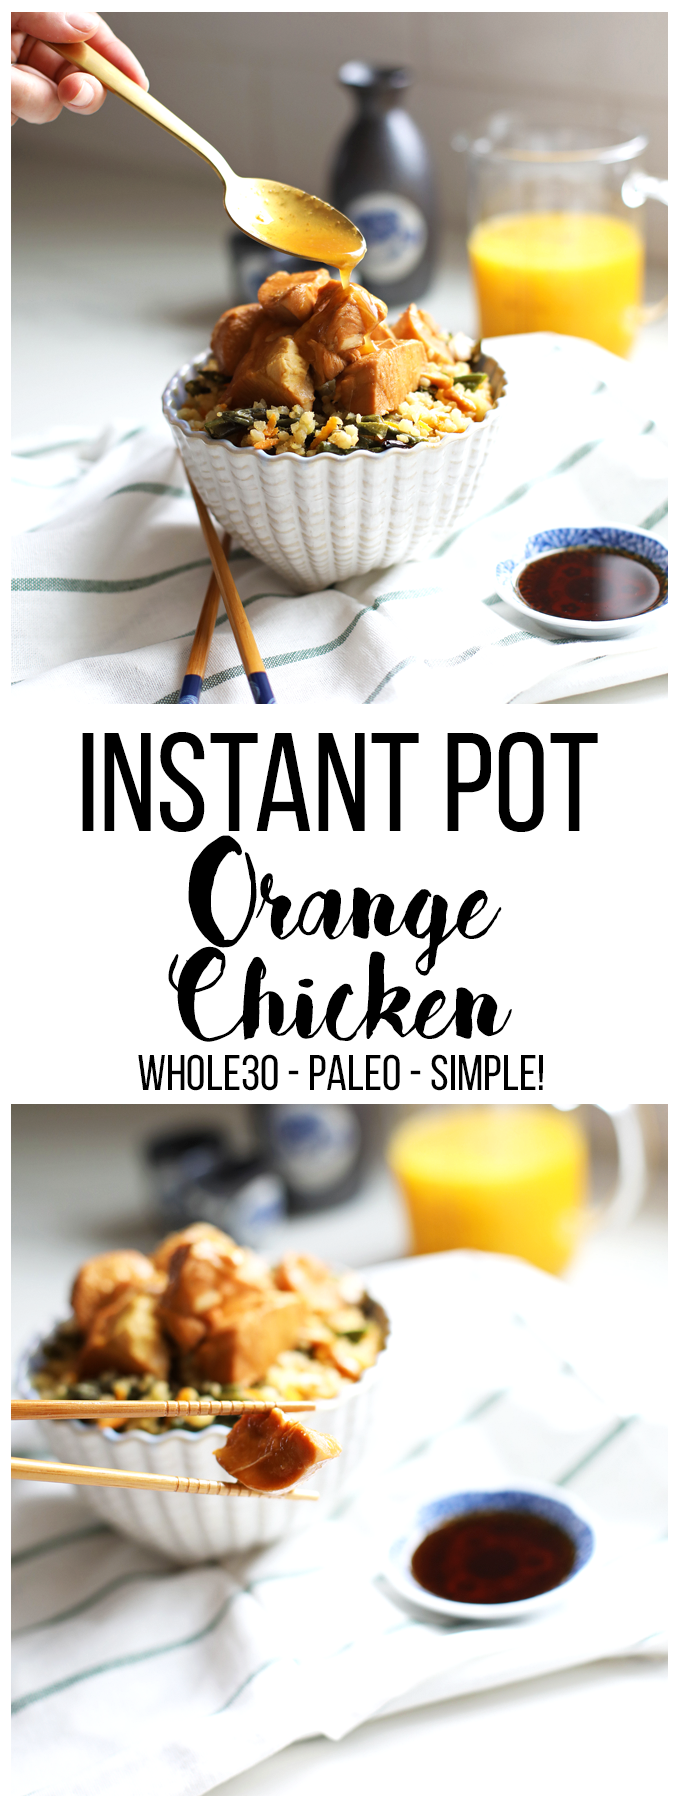 This Instant Pot Orange Chicken comes together in minutes and is the perfect Whole30 weeknight dinner!!